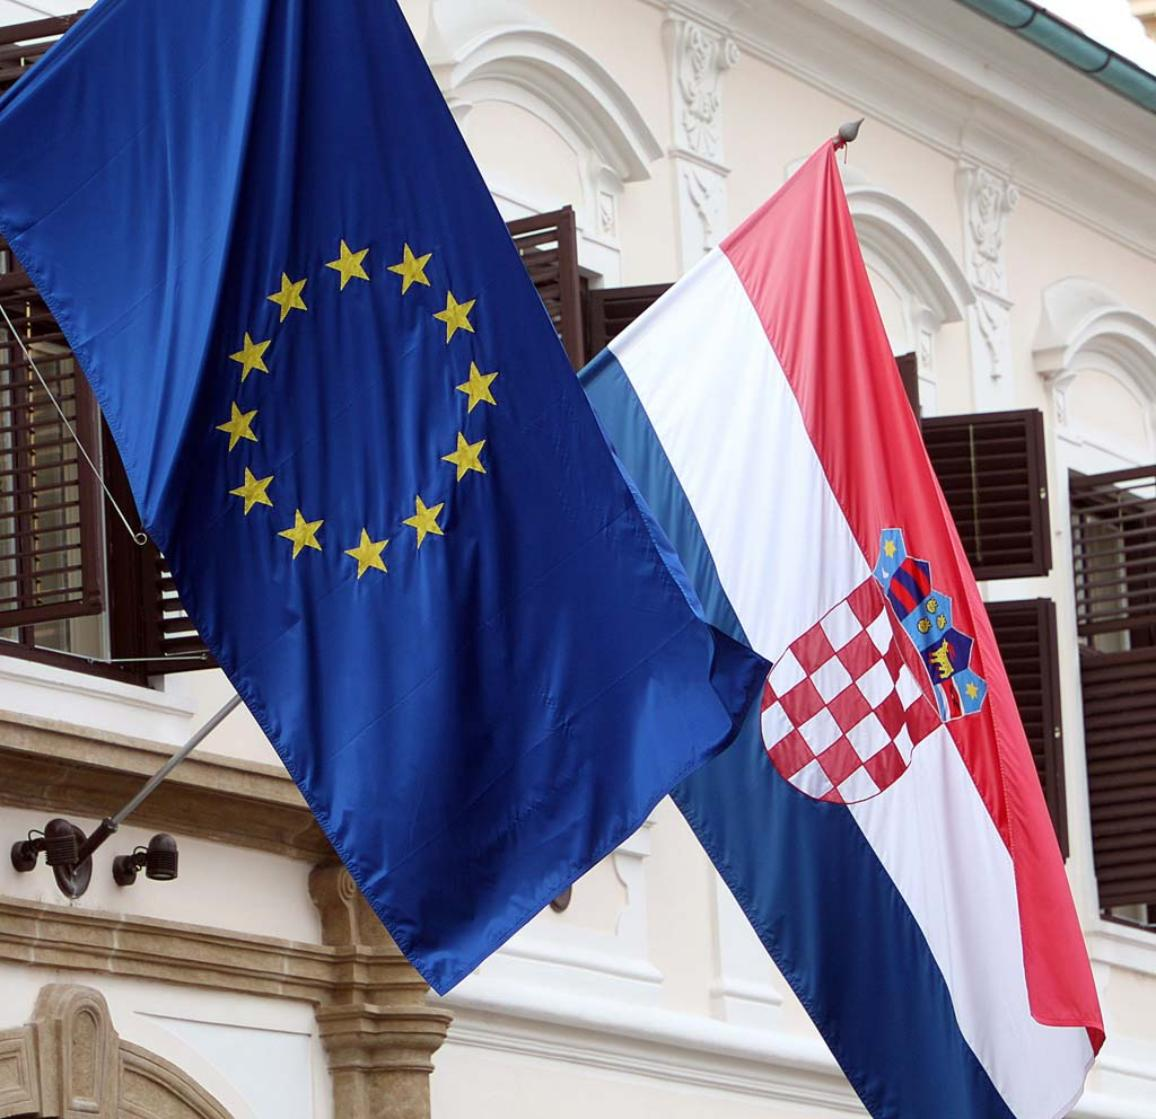 The flags of the European Union and Croatia fly at the Croatian Government building in Zagreb